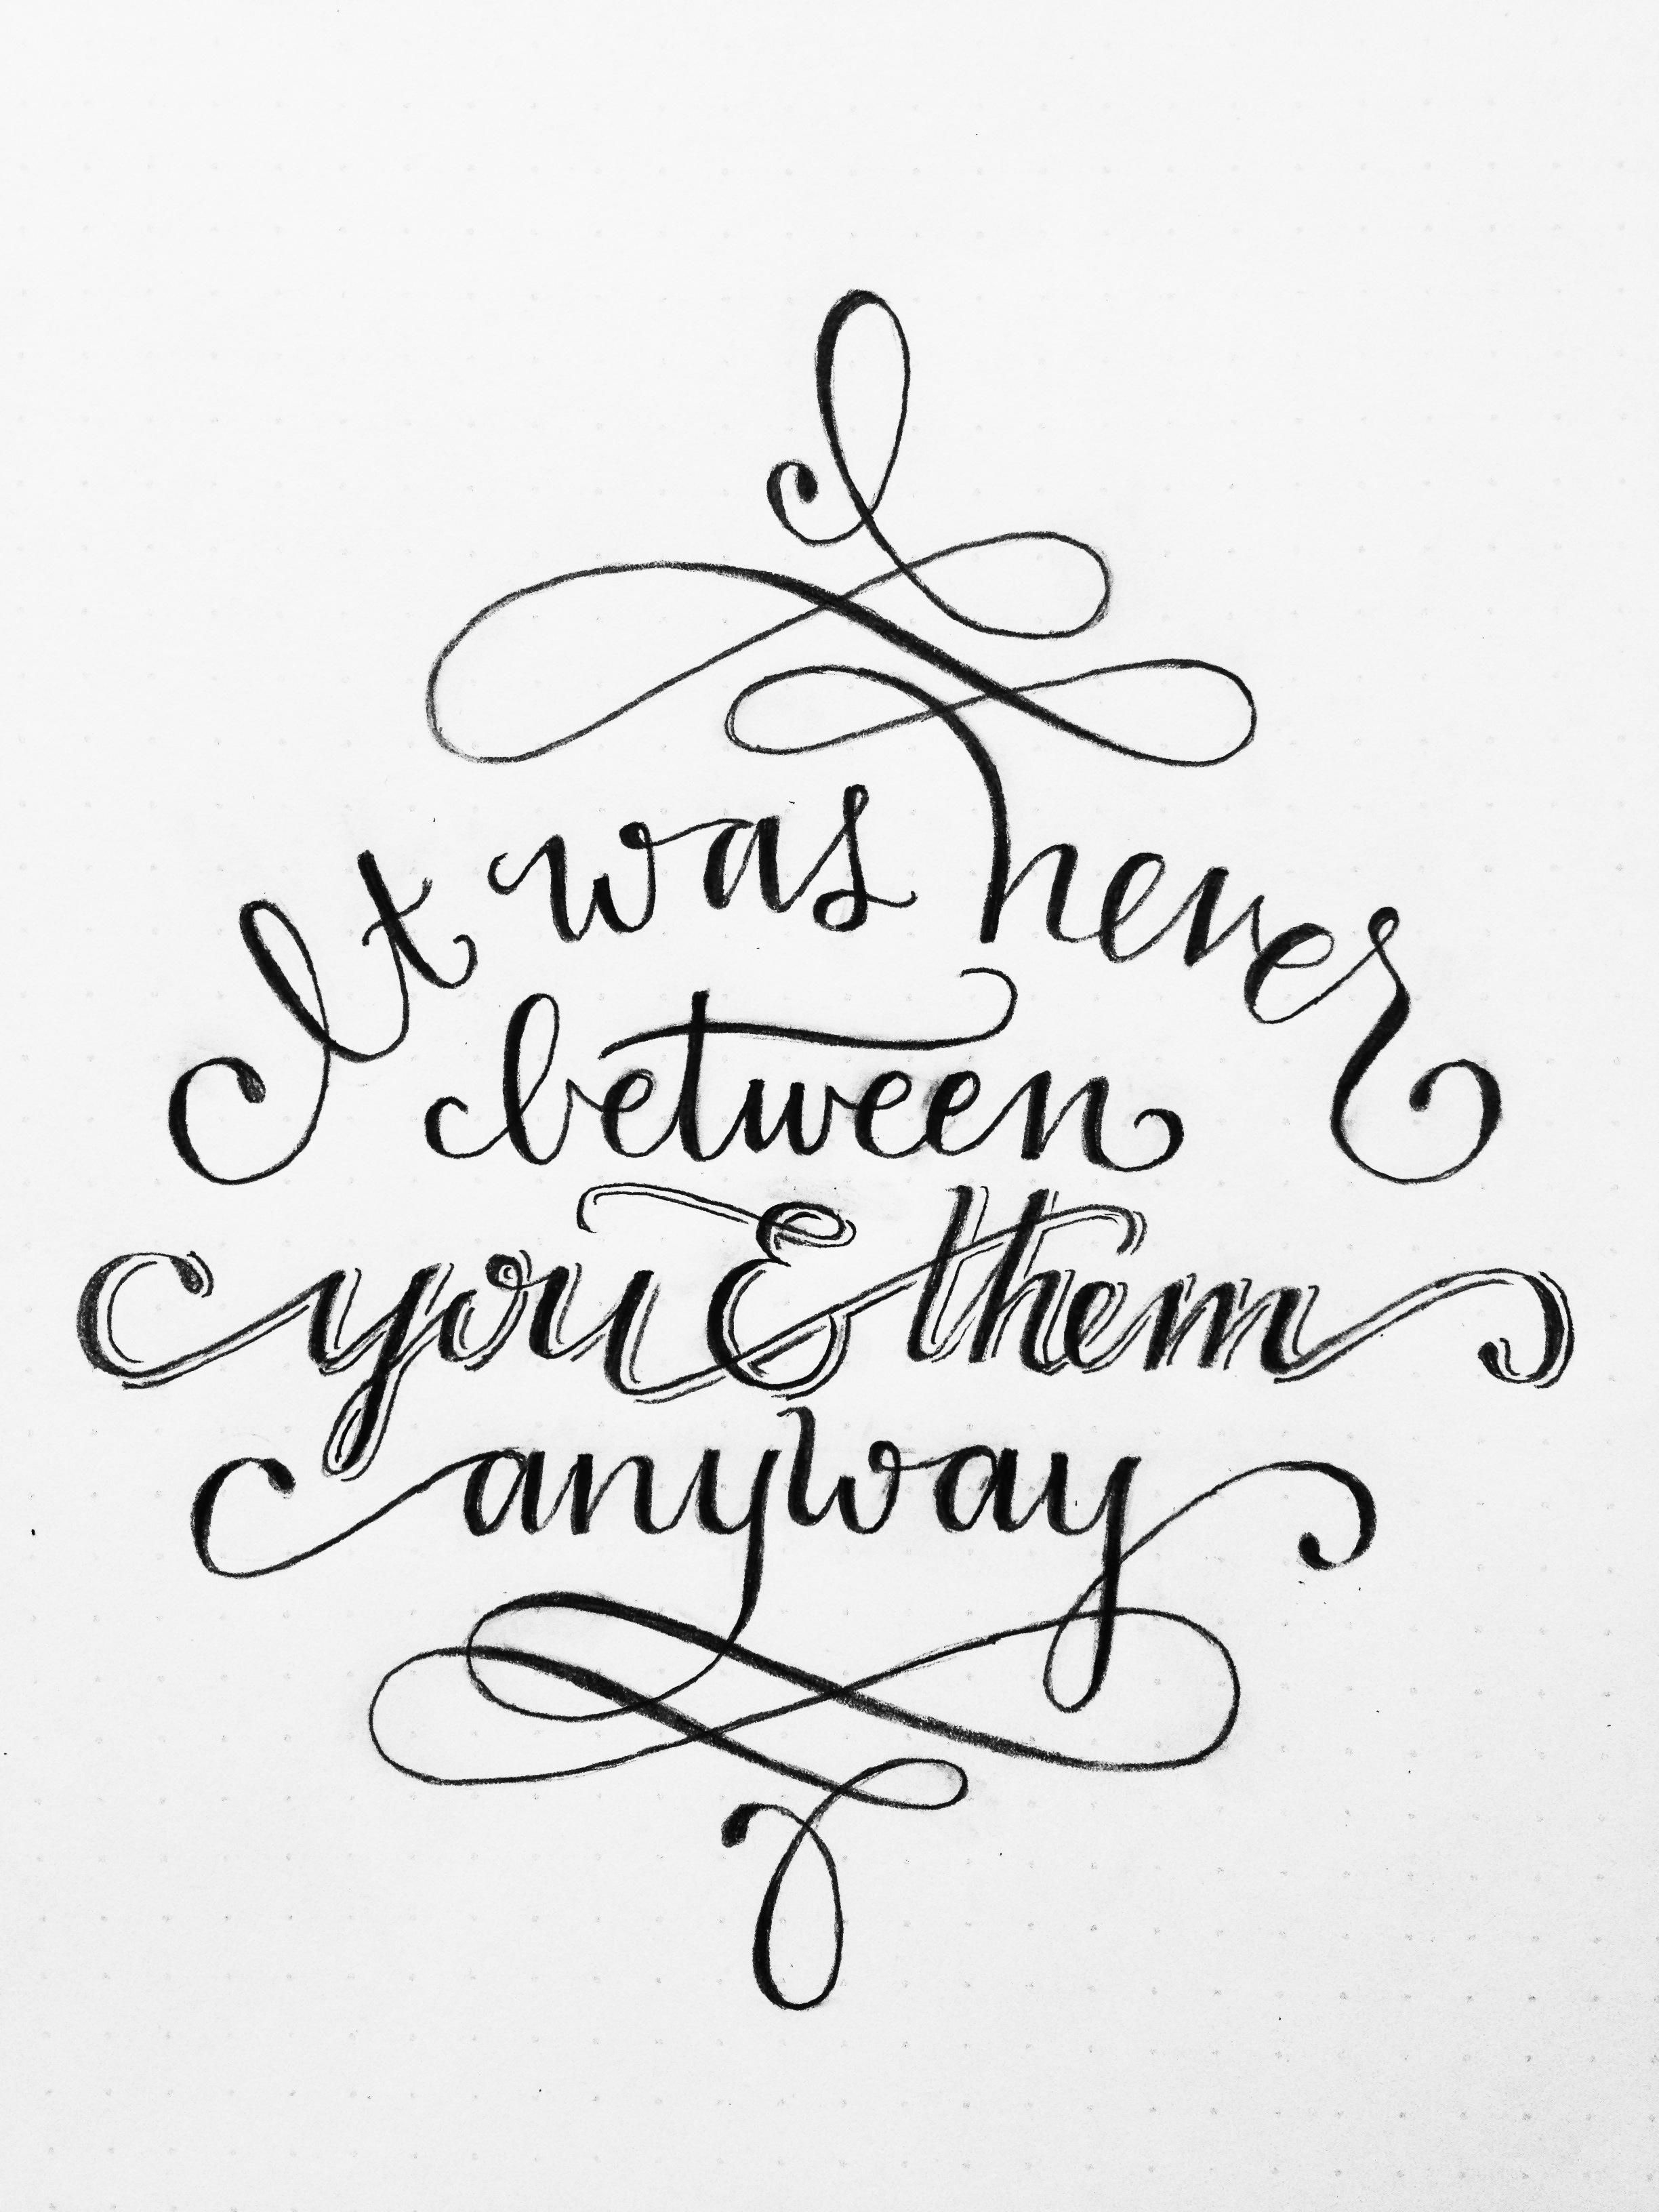 """""""It was never between you and them anyway."""" - Mother Teresa by Torrie Asai - Skillshare"""